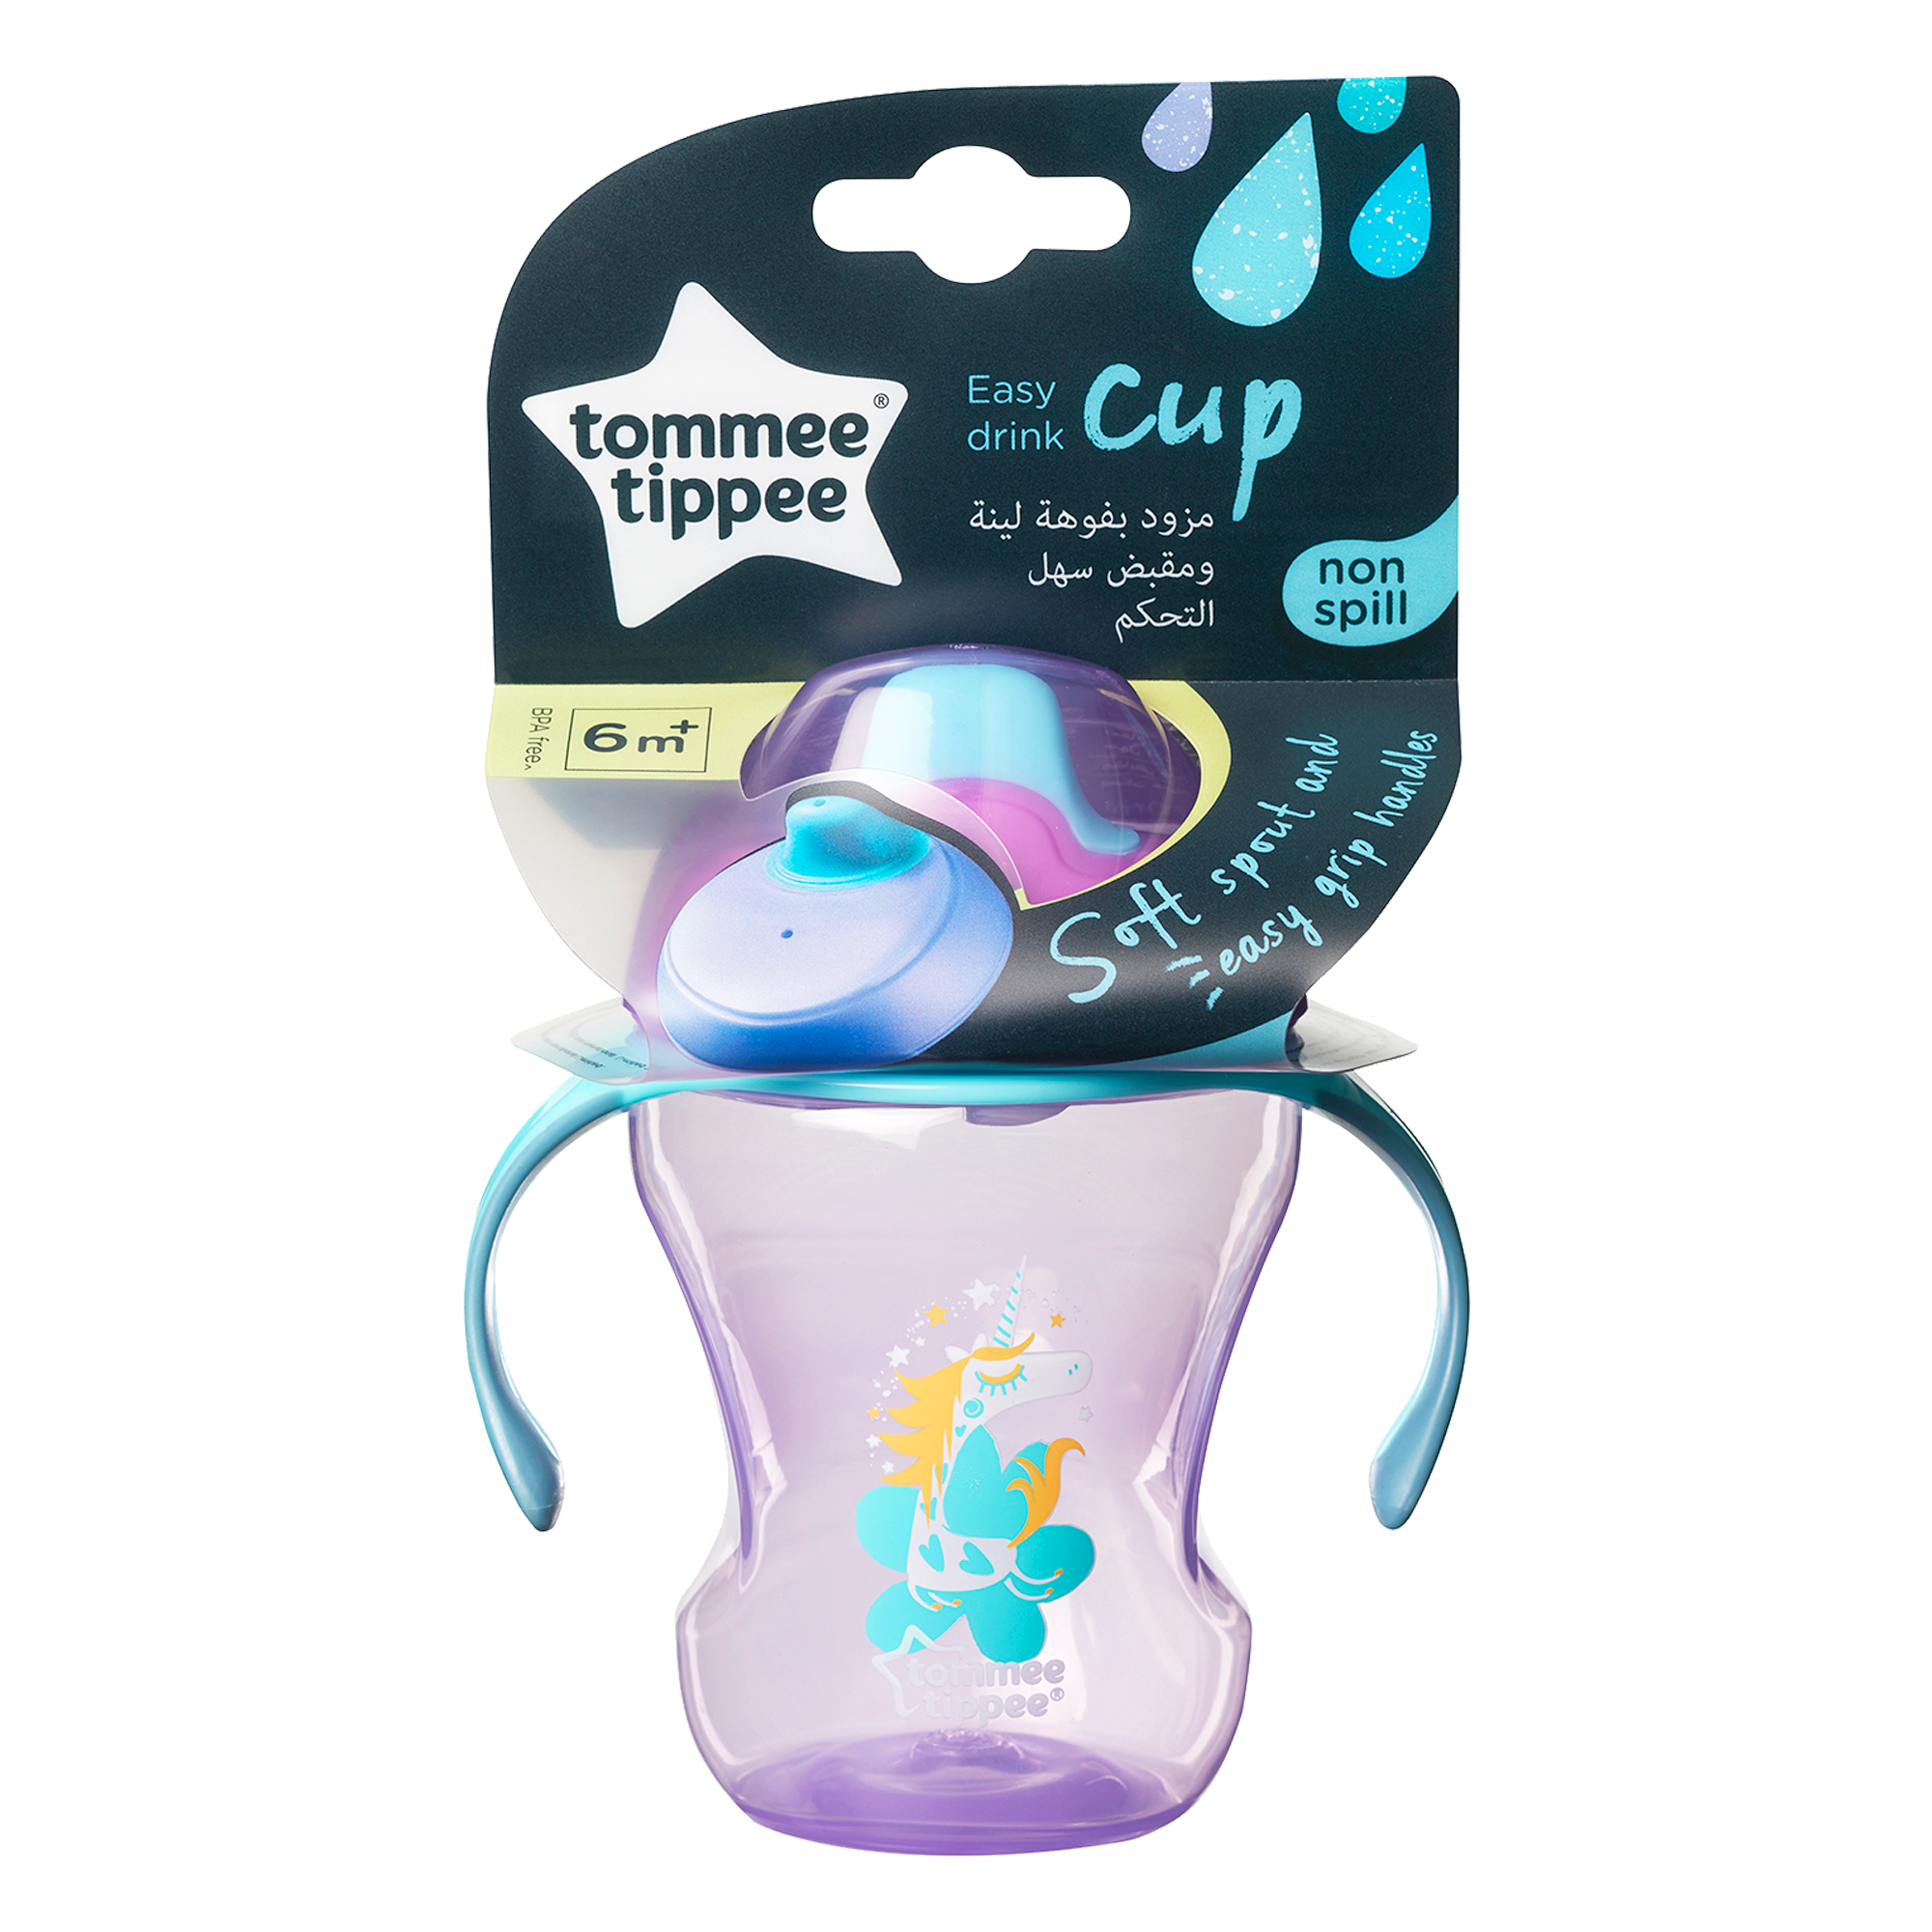 Cana Easy Drink, Tommee Tippee, Explora, 230ml